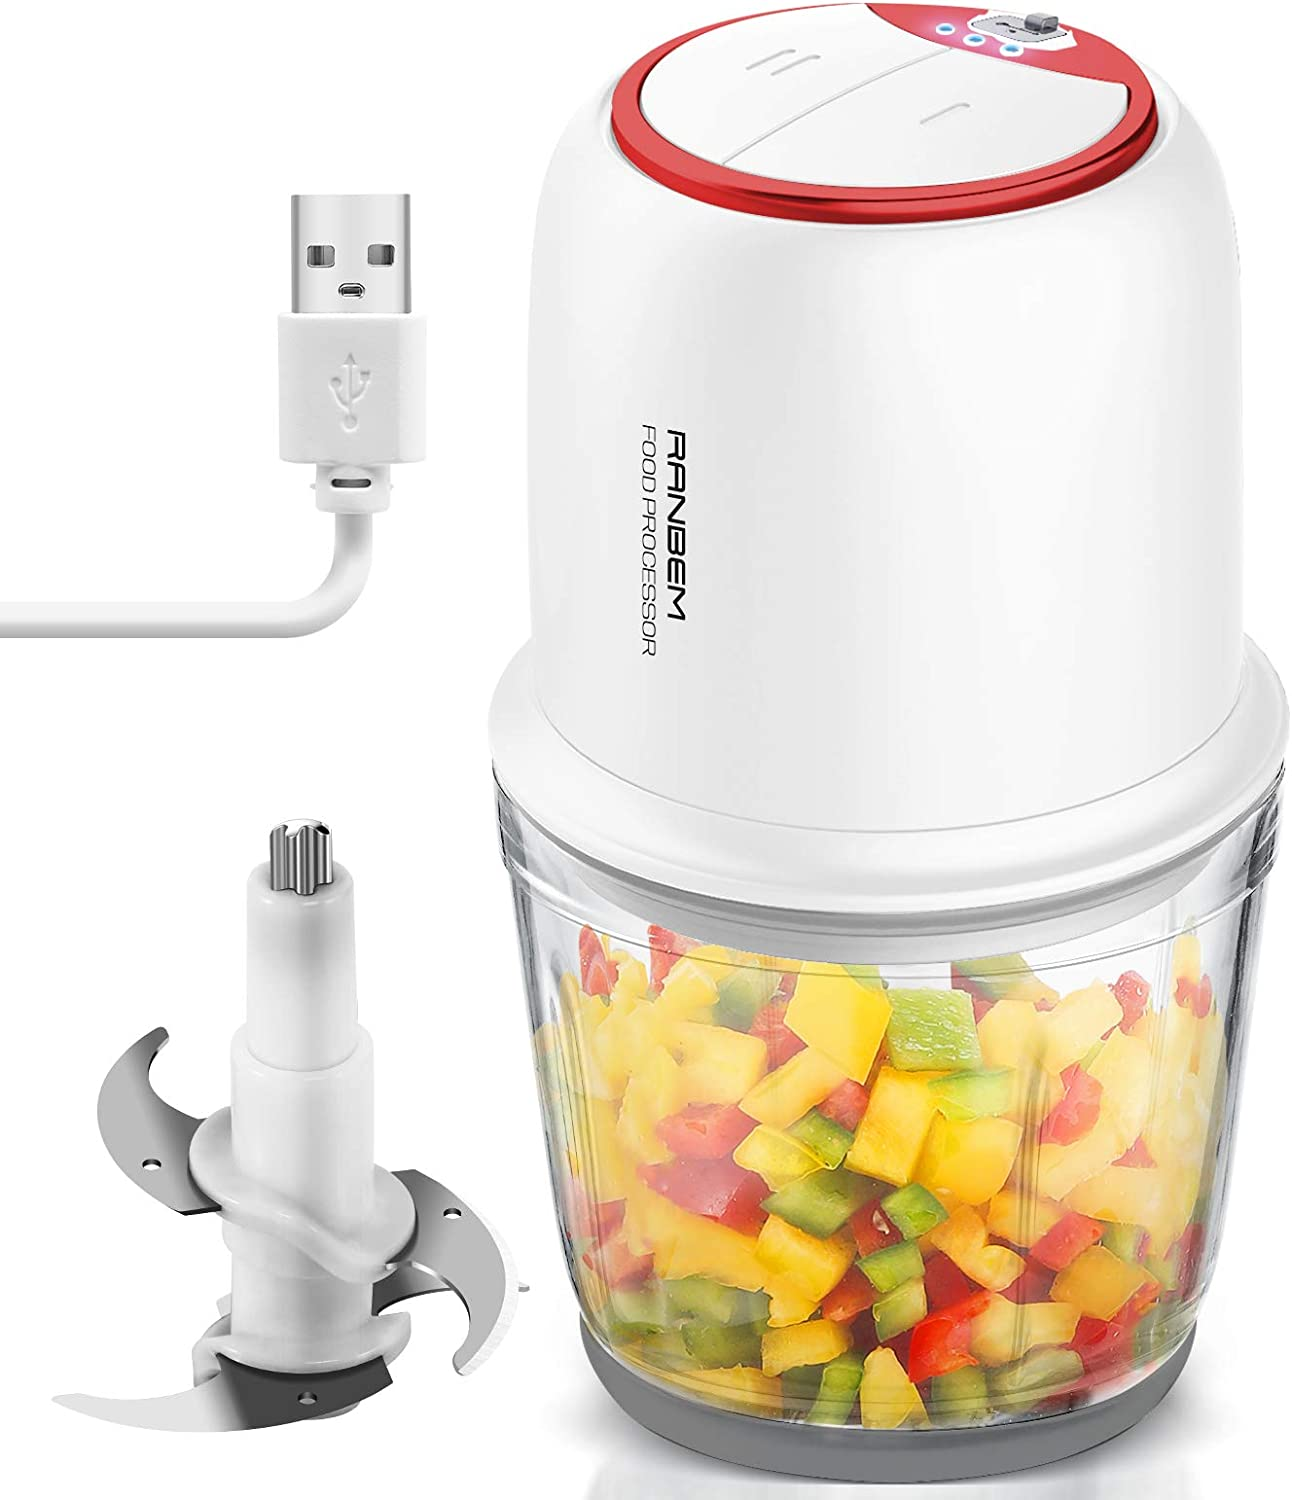 RANBEM Mini Food Processor Chopper - USB Cordless Small Vegetables Chopper with 2.5 Cup Glass Bowl for Mincing, Electric Chopper for Garlic, Onion, Meat 2-Speed White